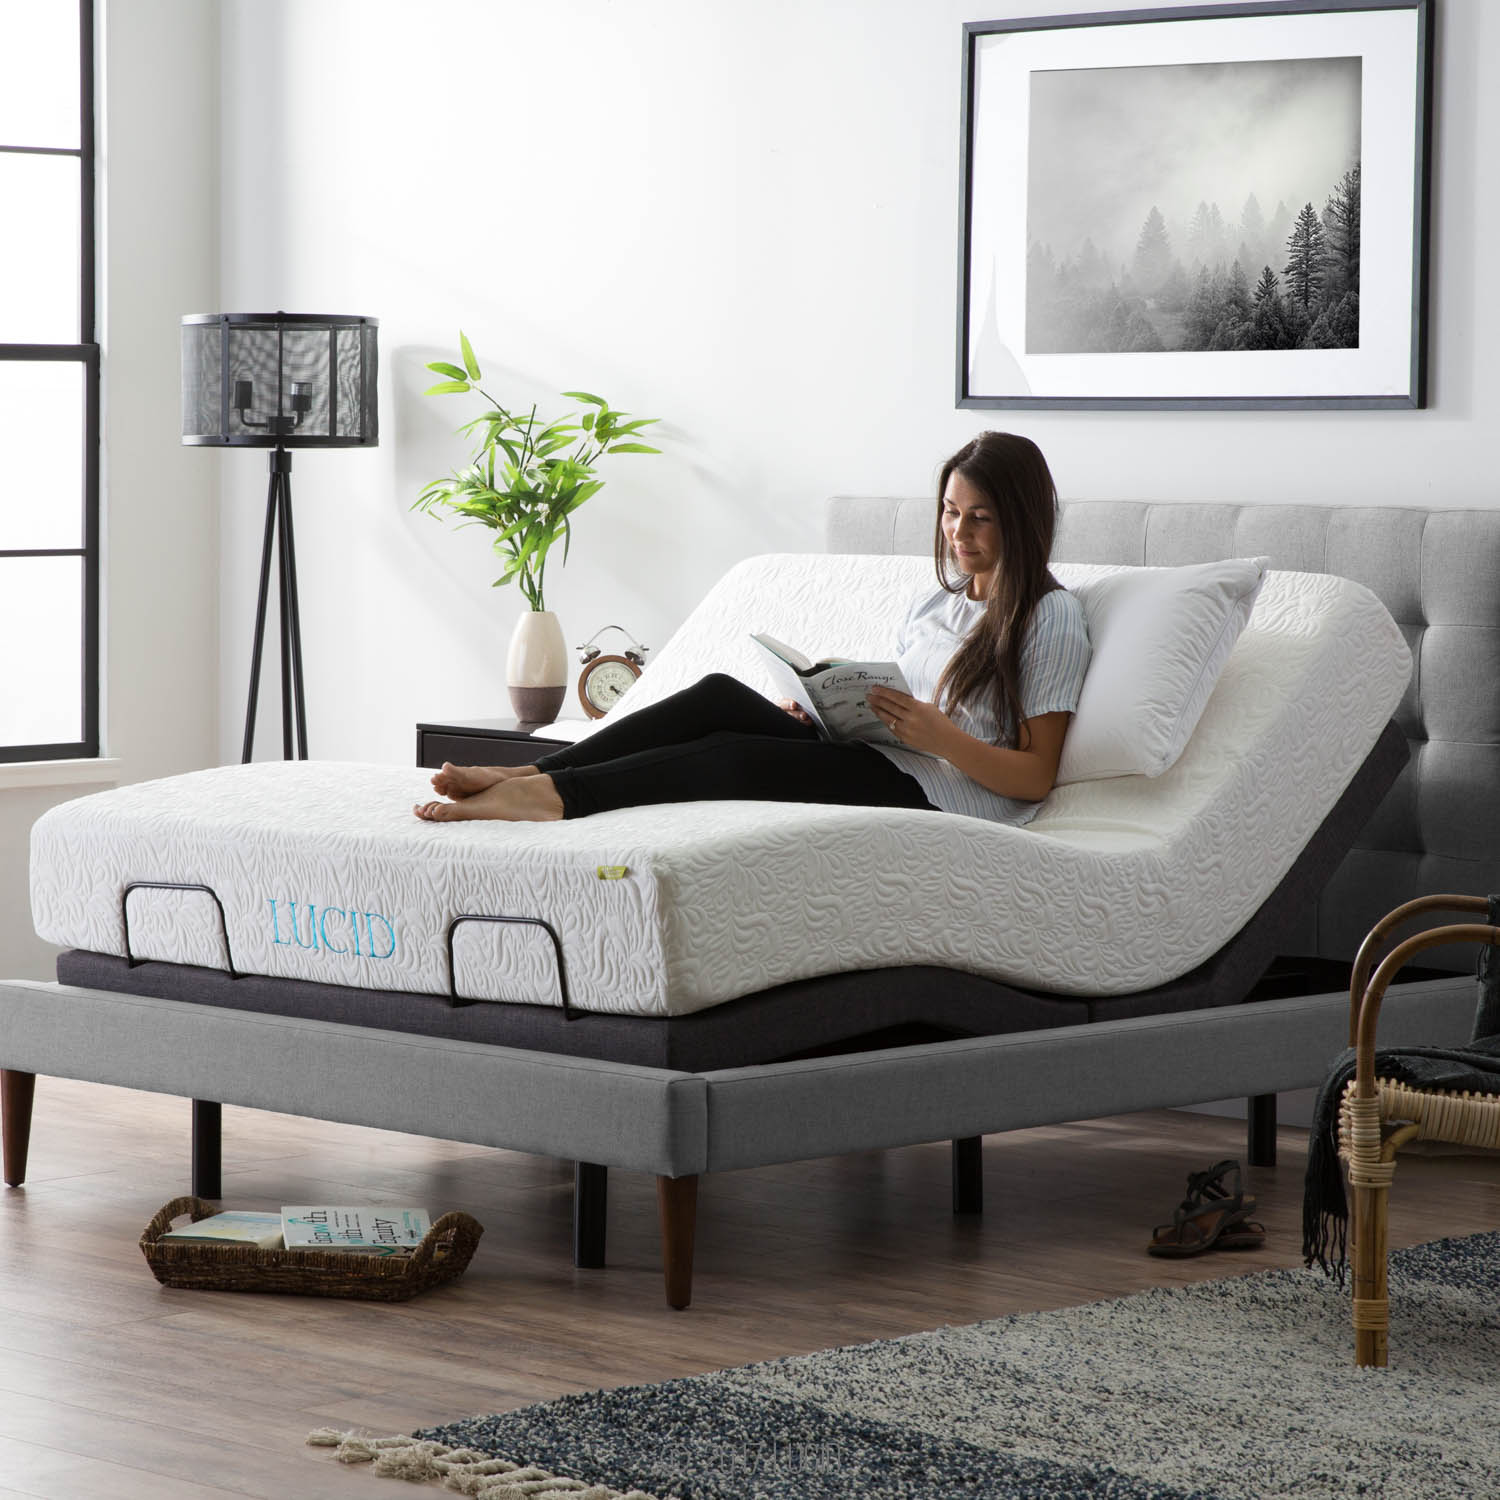 Adjustable Bed Base >> Lucid L300 Adjustable Bed Base With Dual Usb Charging Ports